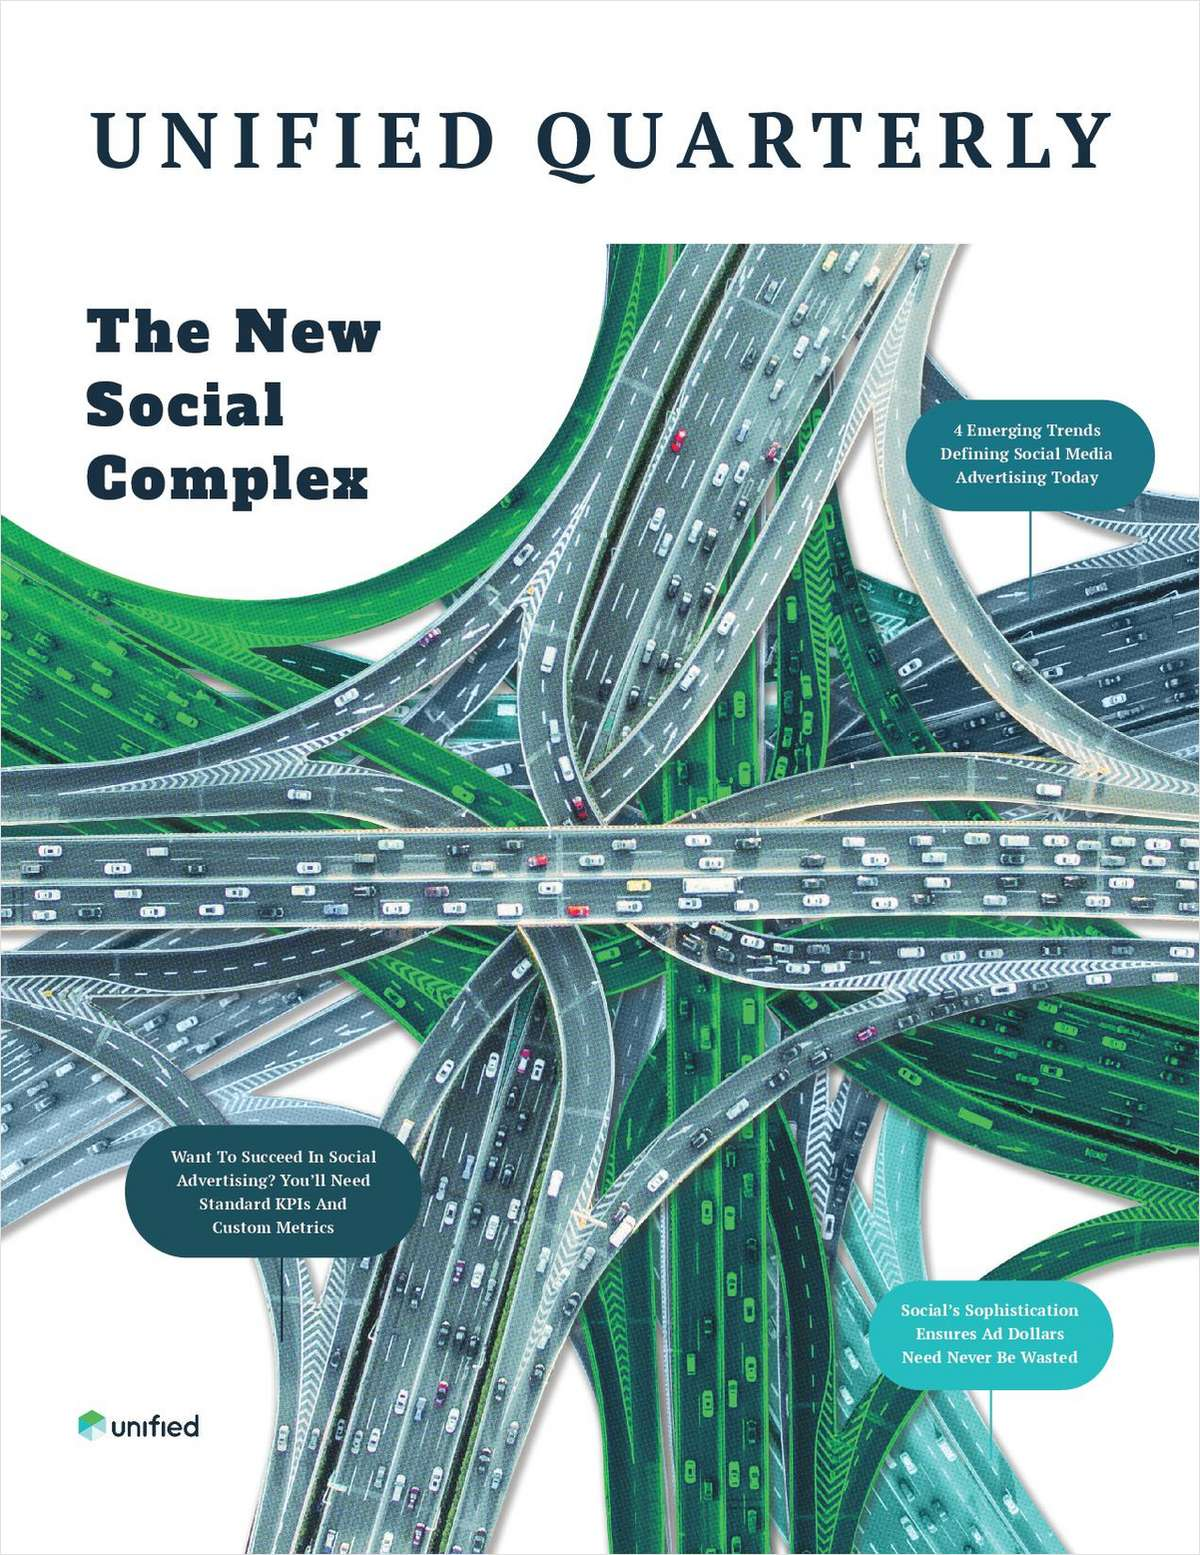 Unified Quarterly Magazine: The New Social Complex